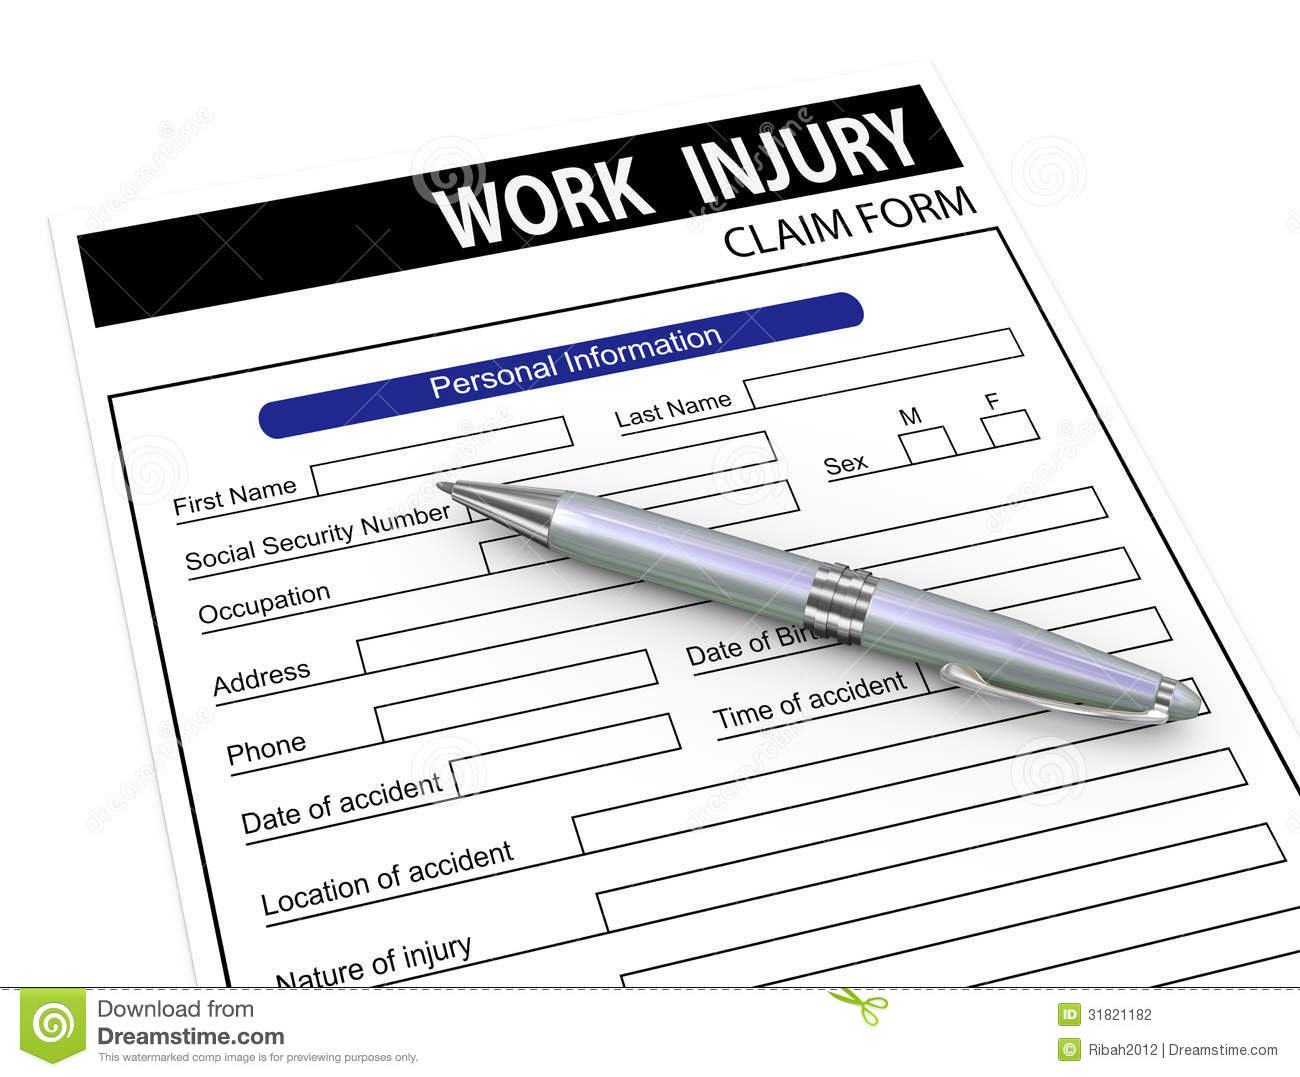 injury compensation Learn more about job-related injuries, workers' compensation, disability, product  liability, and other legal issues at findlawcom.